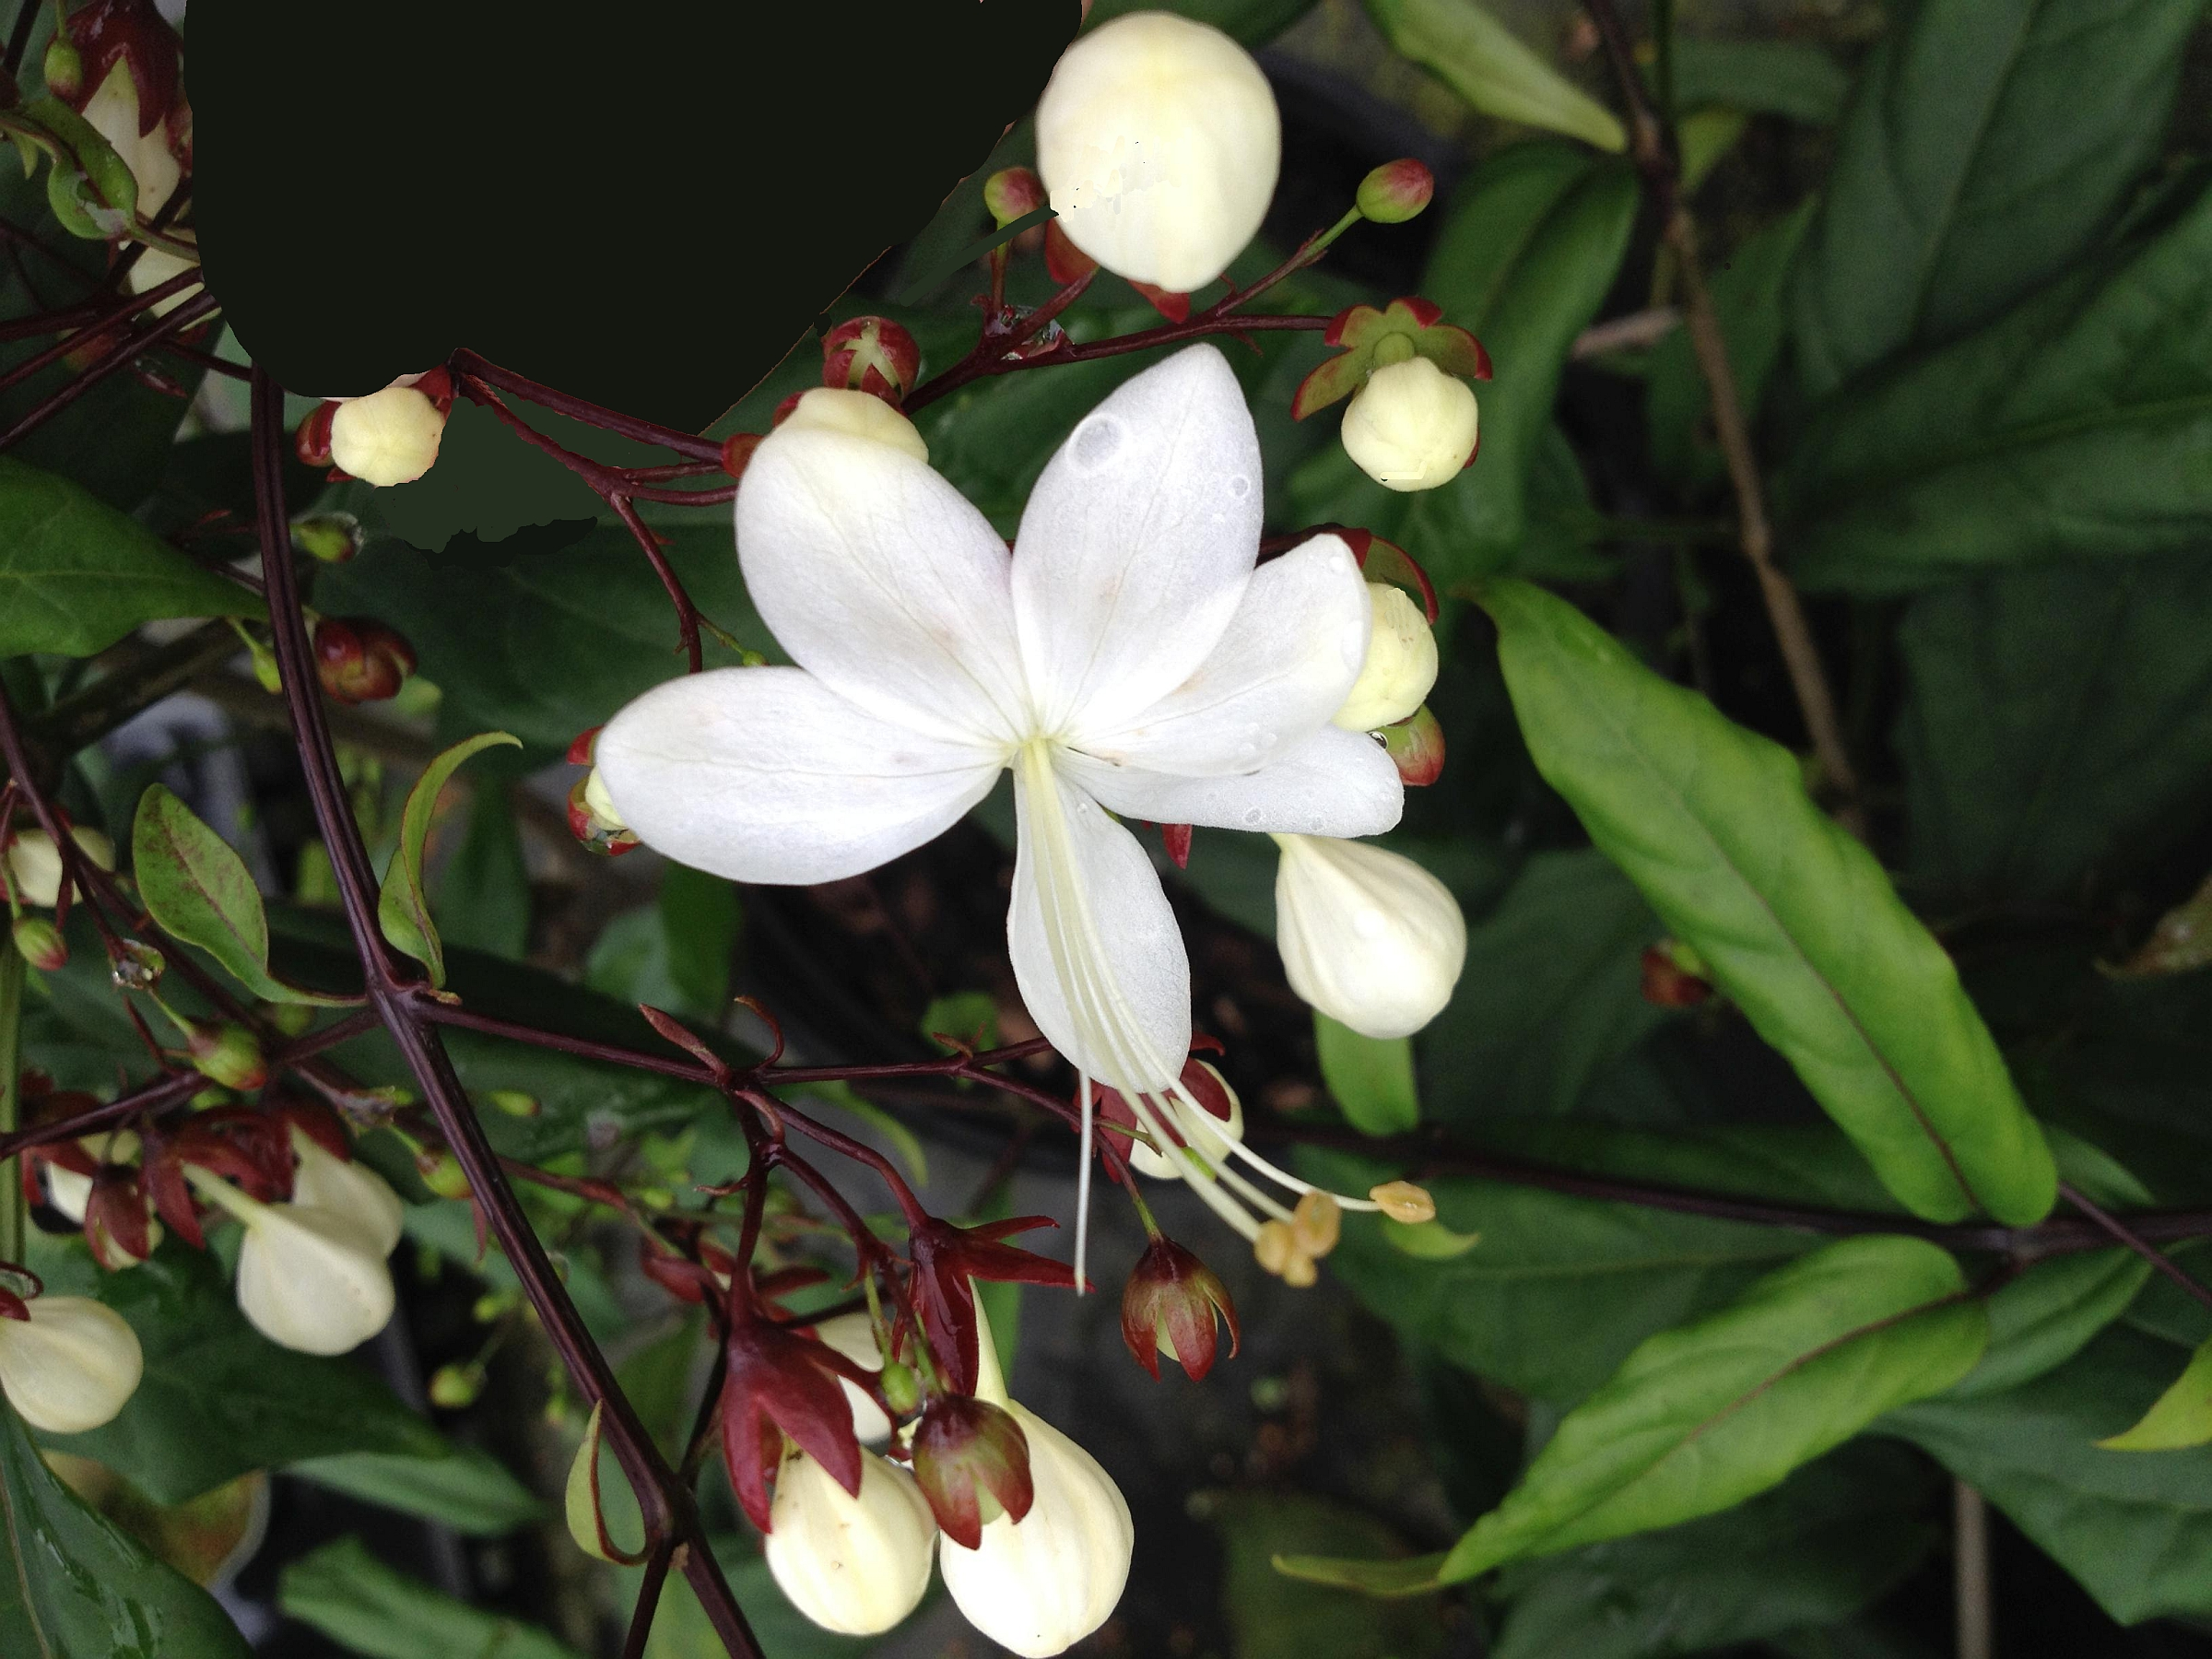 Light Bulbs Tropical Live Plant Chains Of Glory Unusual White